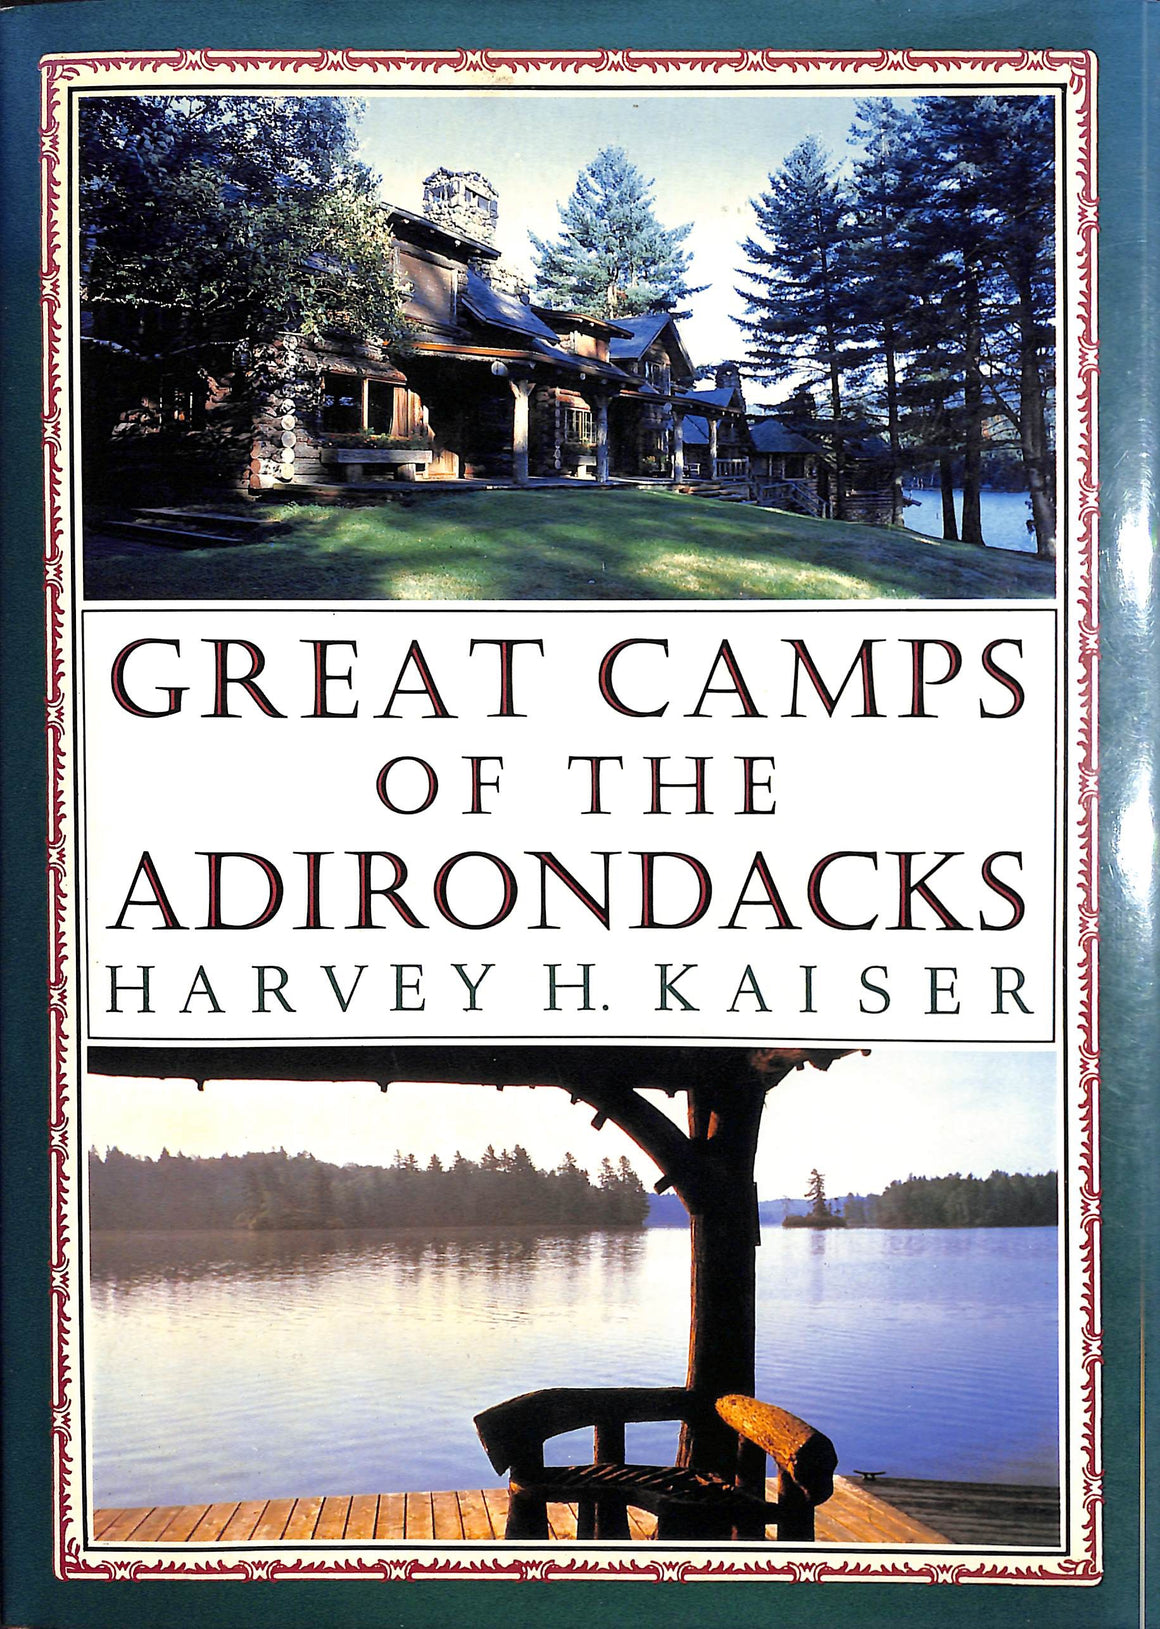 Great Camps of The Adirondacks by Harvey H. Kaiser